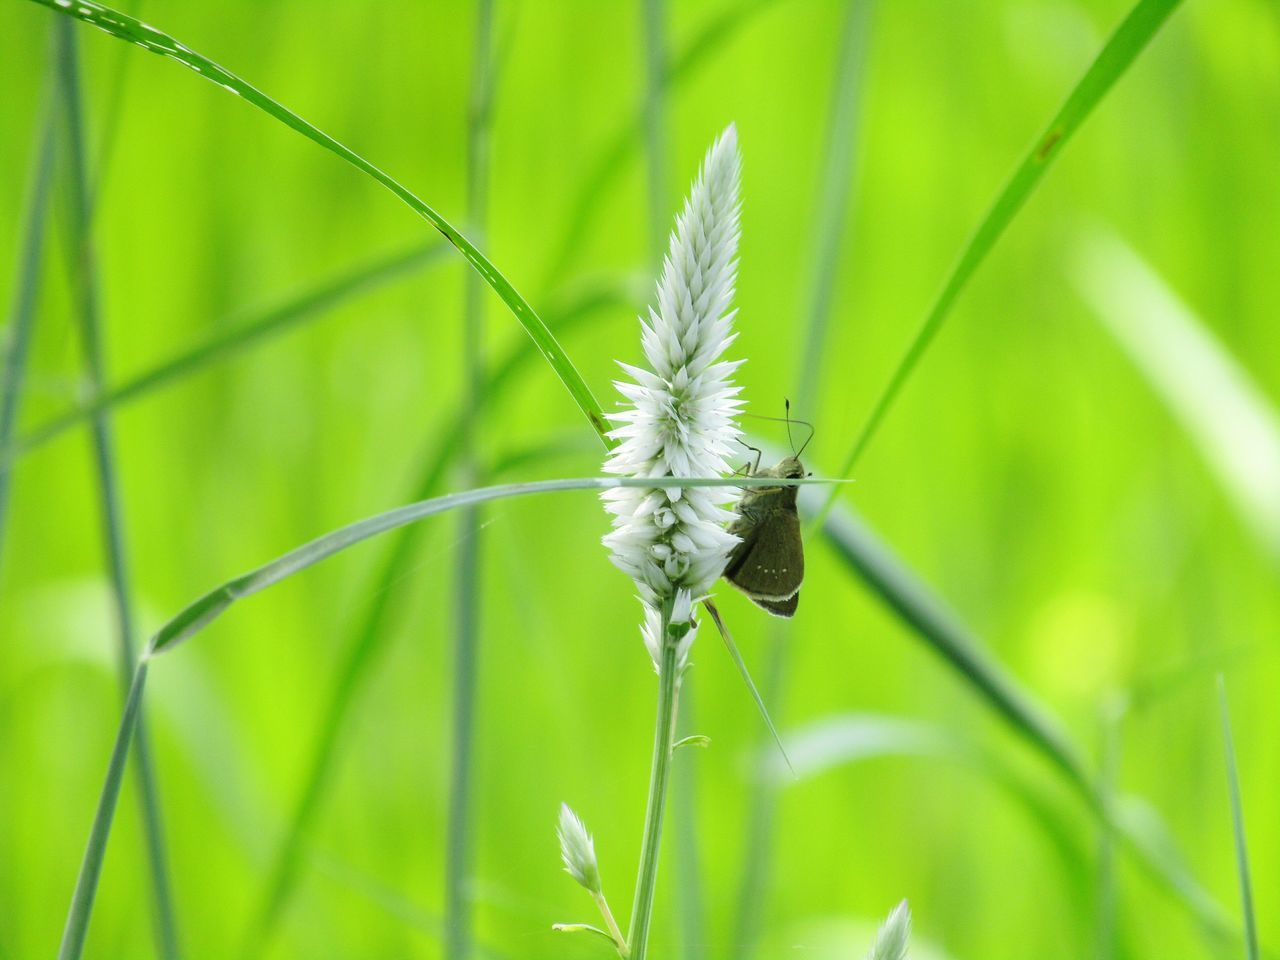 growth, green color, plant, nature, grass, insect, beauty in nature, one animal, day, no people, outdoors, close-up, animals in the wild, animal themes, fragility, flower, freshness